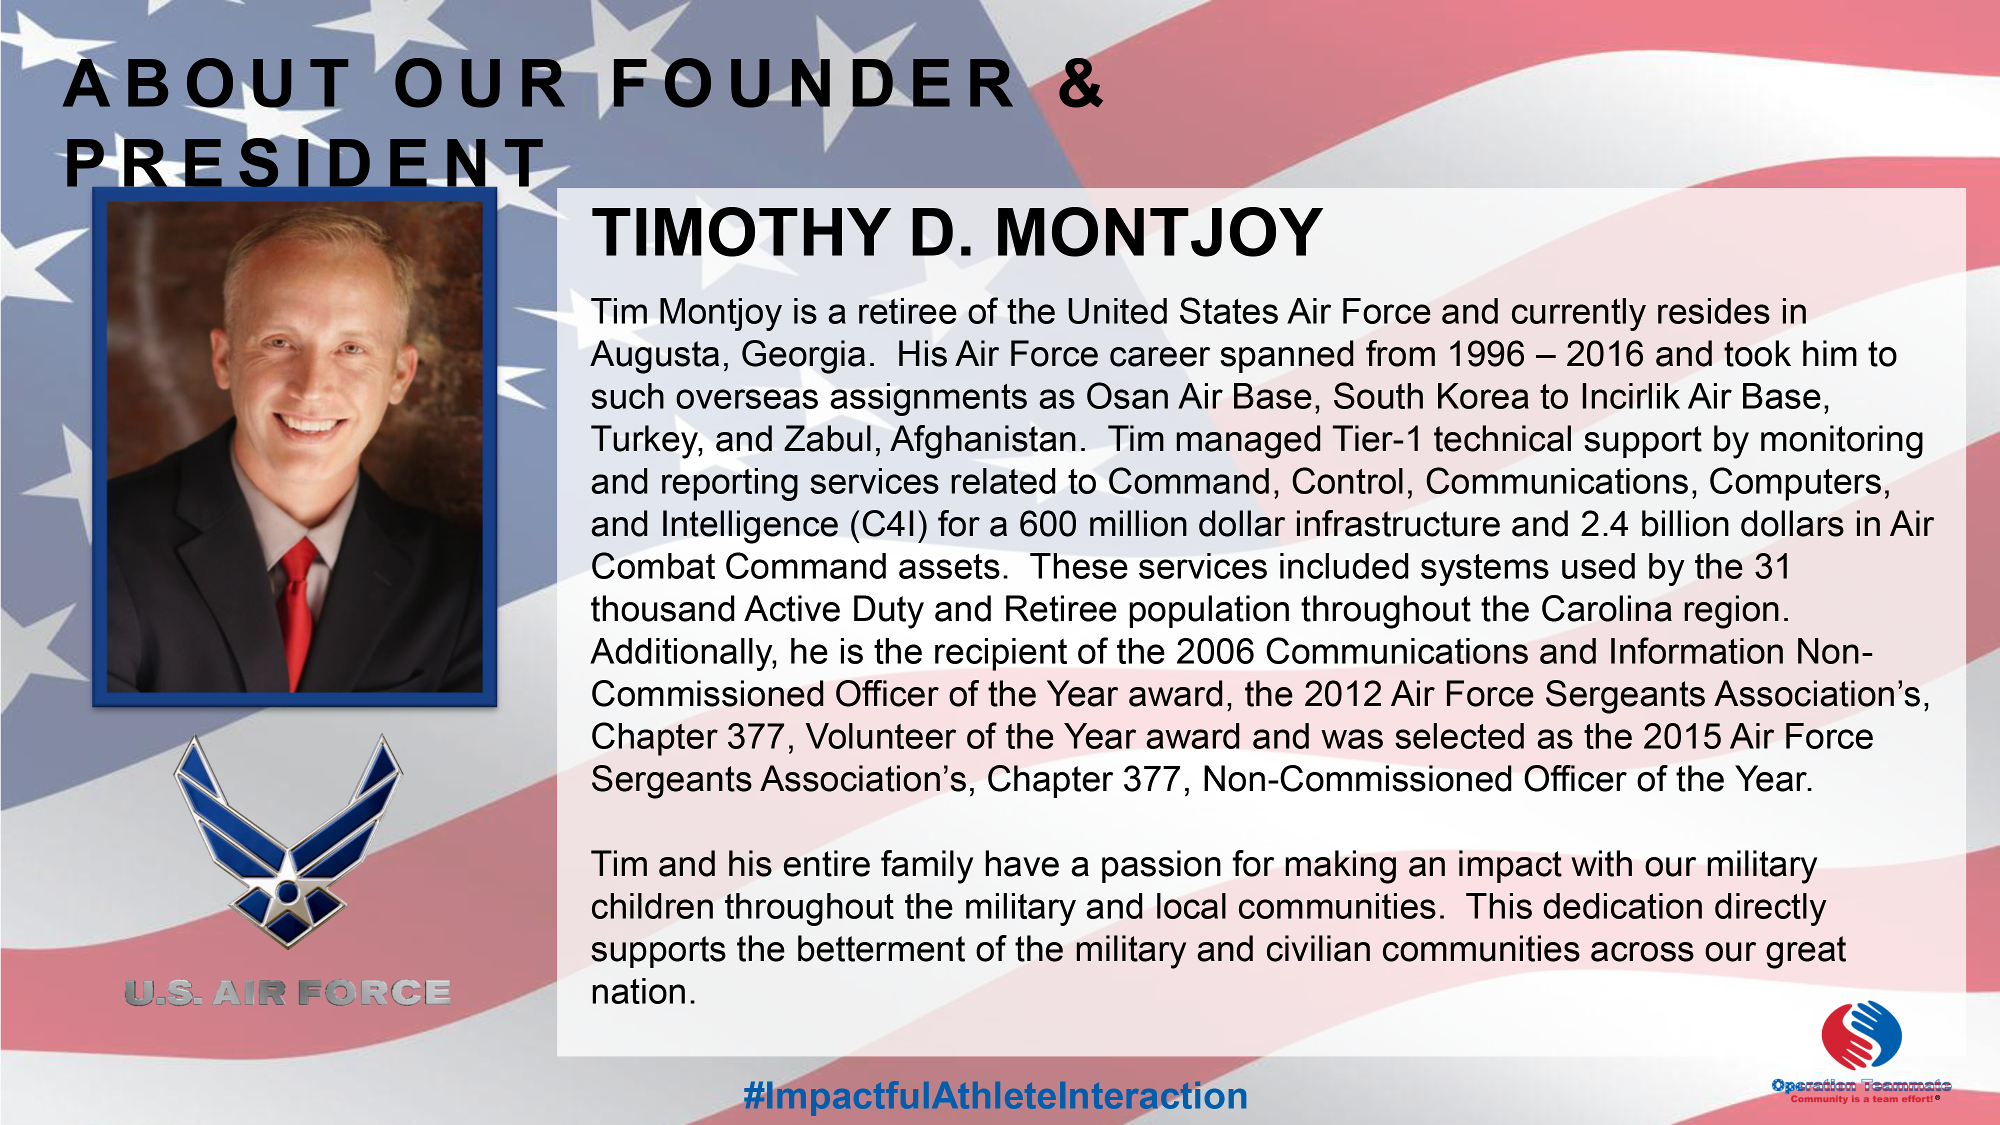 About Our Founder and President